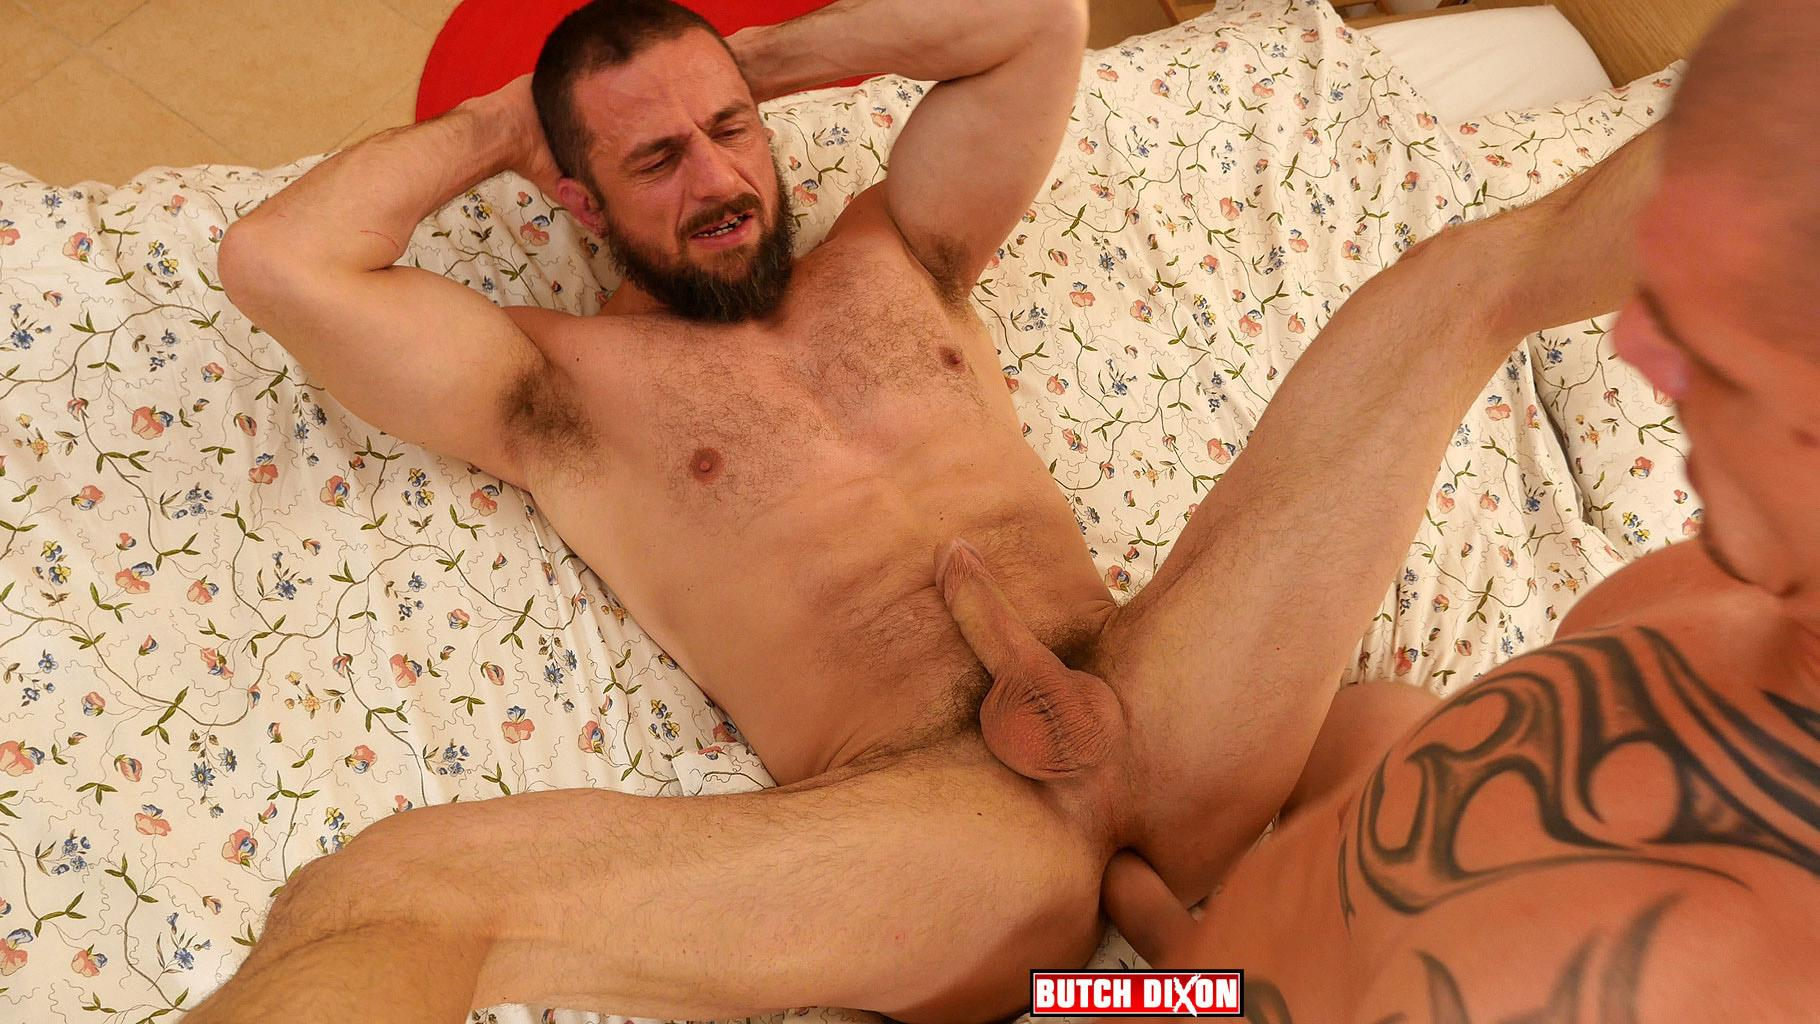 Butch Dixon Erik Lenn and Mike Bourne Masculine Guys Fucking Bareback Amateur Gay Porn 21 Beefy Masculine Guys Fucking Bareback With A Big Uncut Cock